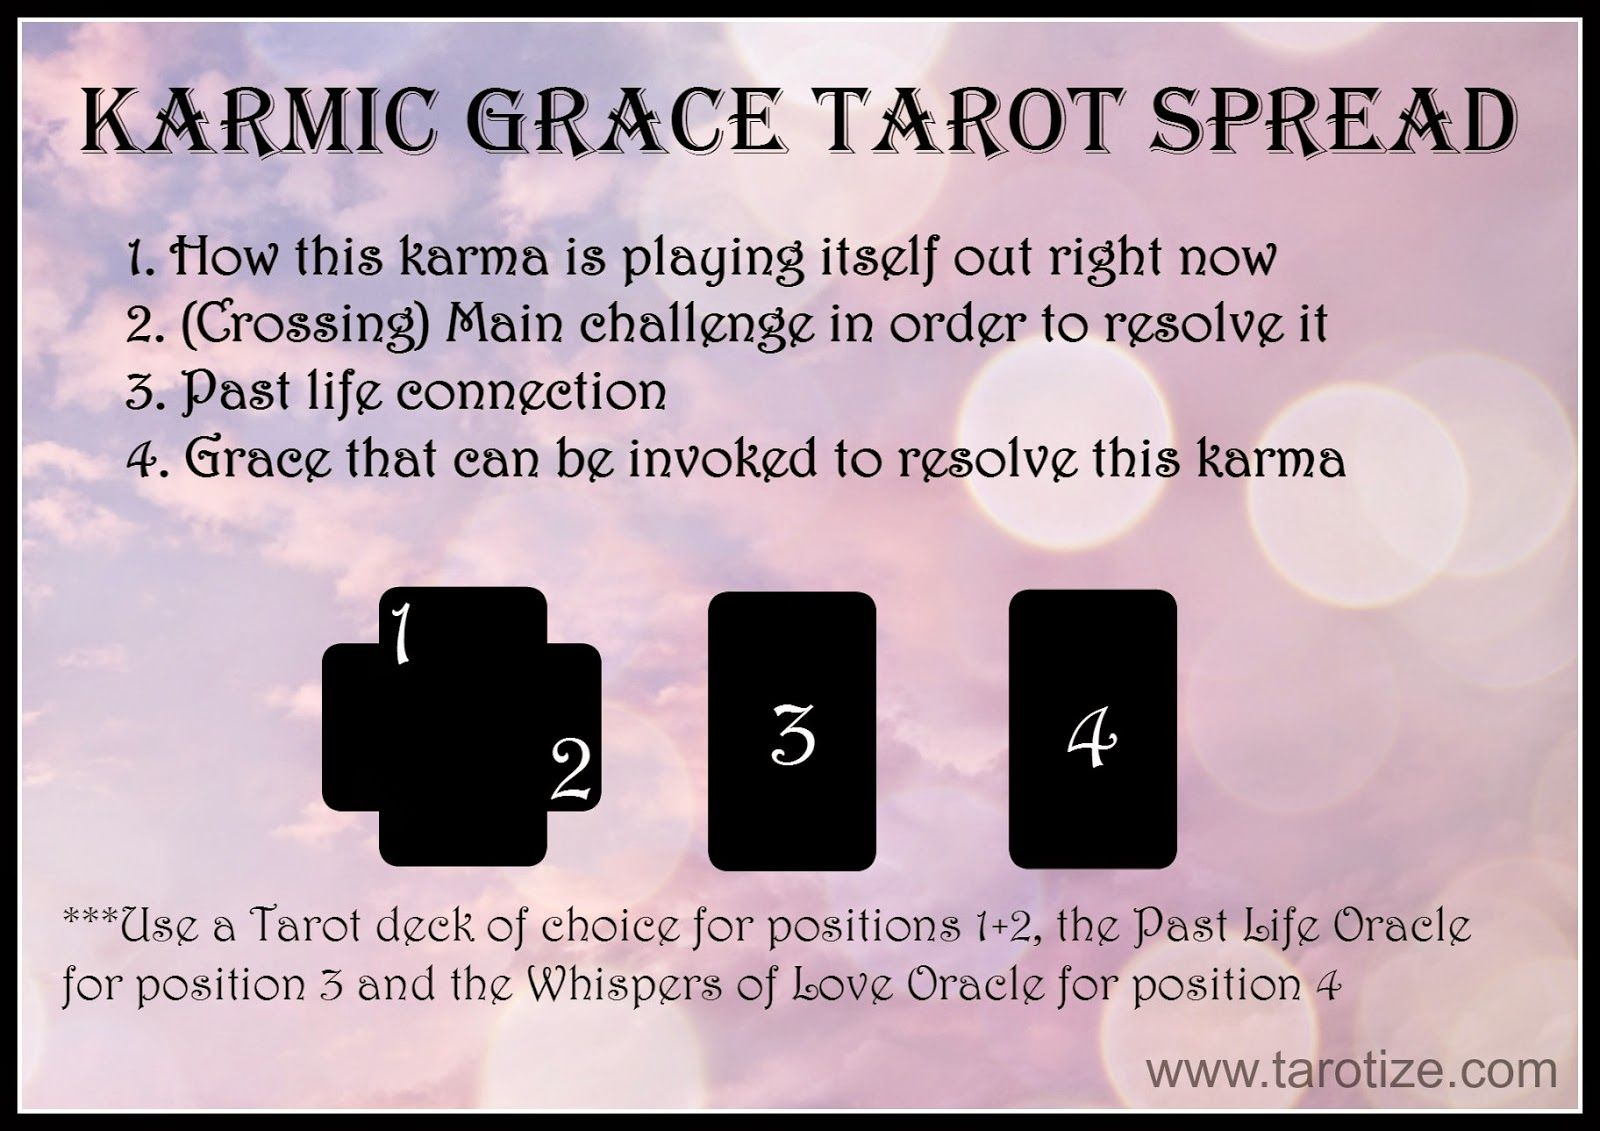 Karmic grace past life tarot spread and sample reading tarot a tarot spread inspired by judy halls past life astrology about how past life issues are affecting the now and what grace we can call on to resolve it geenschuldenfo Image collections